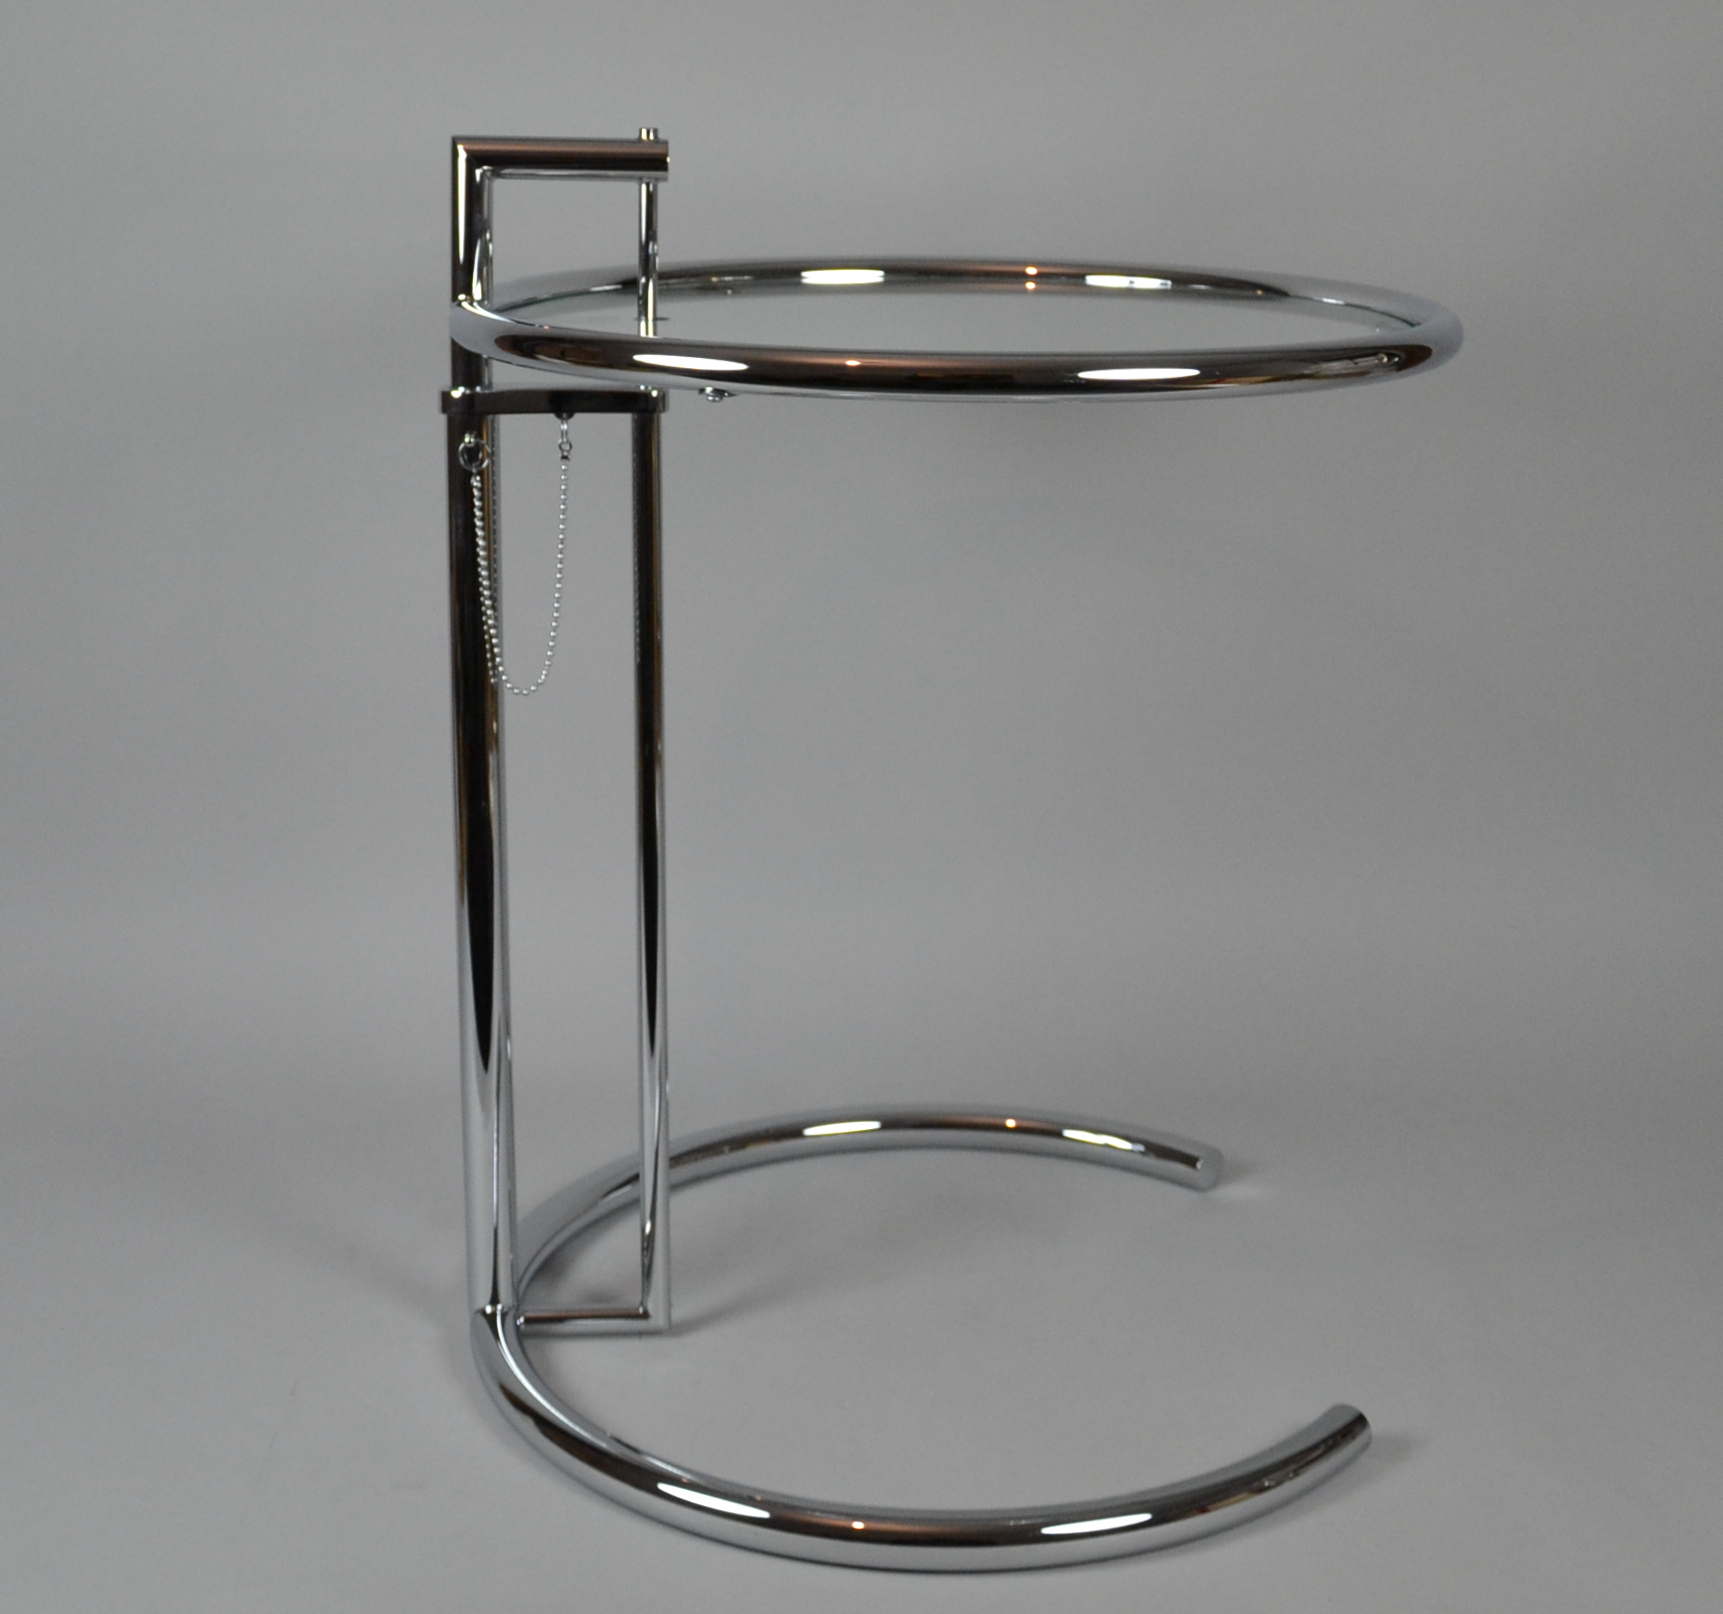 Eileen Gray Tisch Eileen Gray Adjustable Tisch Furniture Tables Auctionet